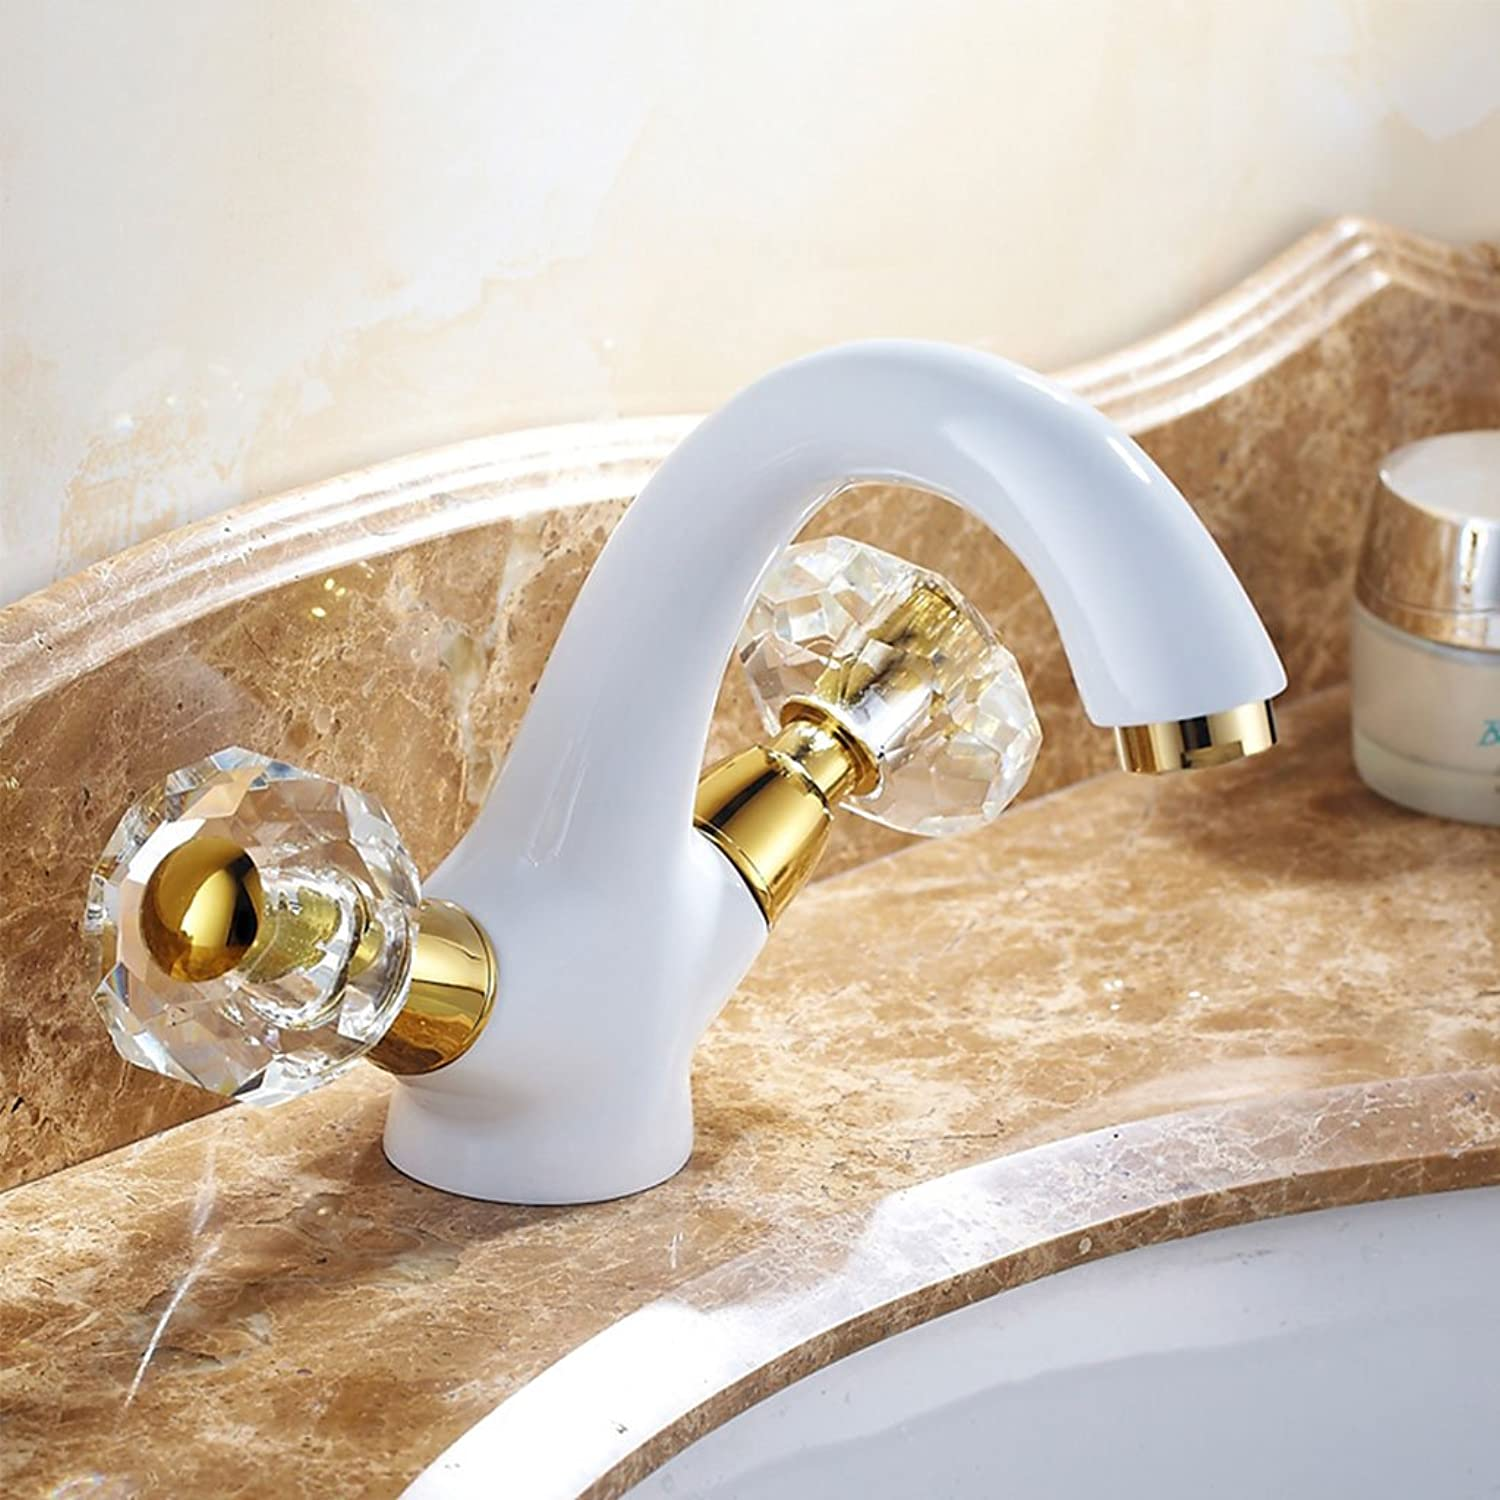 CHENGYI Home High-end Luxury Basin Mixer Creative Fashion Bathroom Kitchen Hot and Cold Faucet